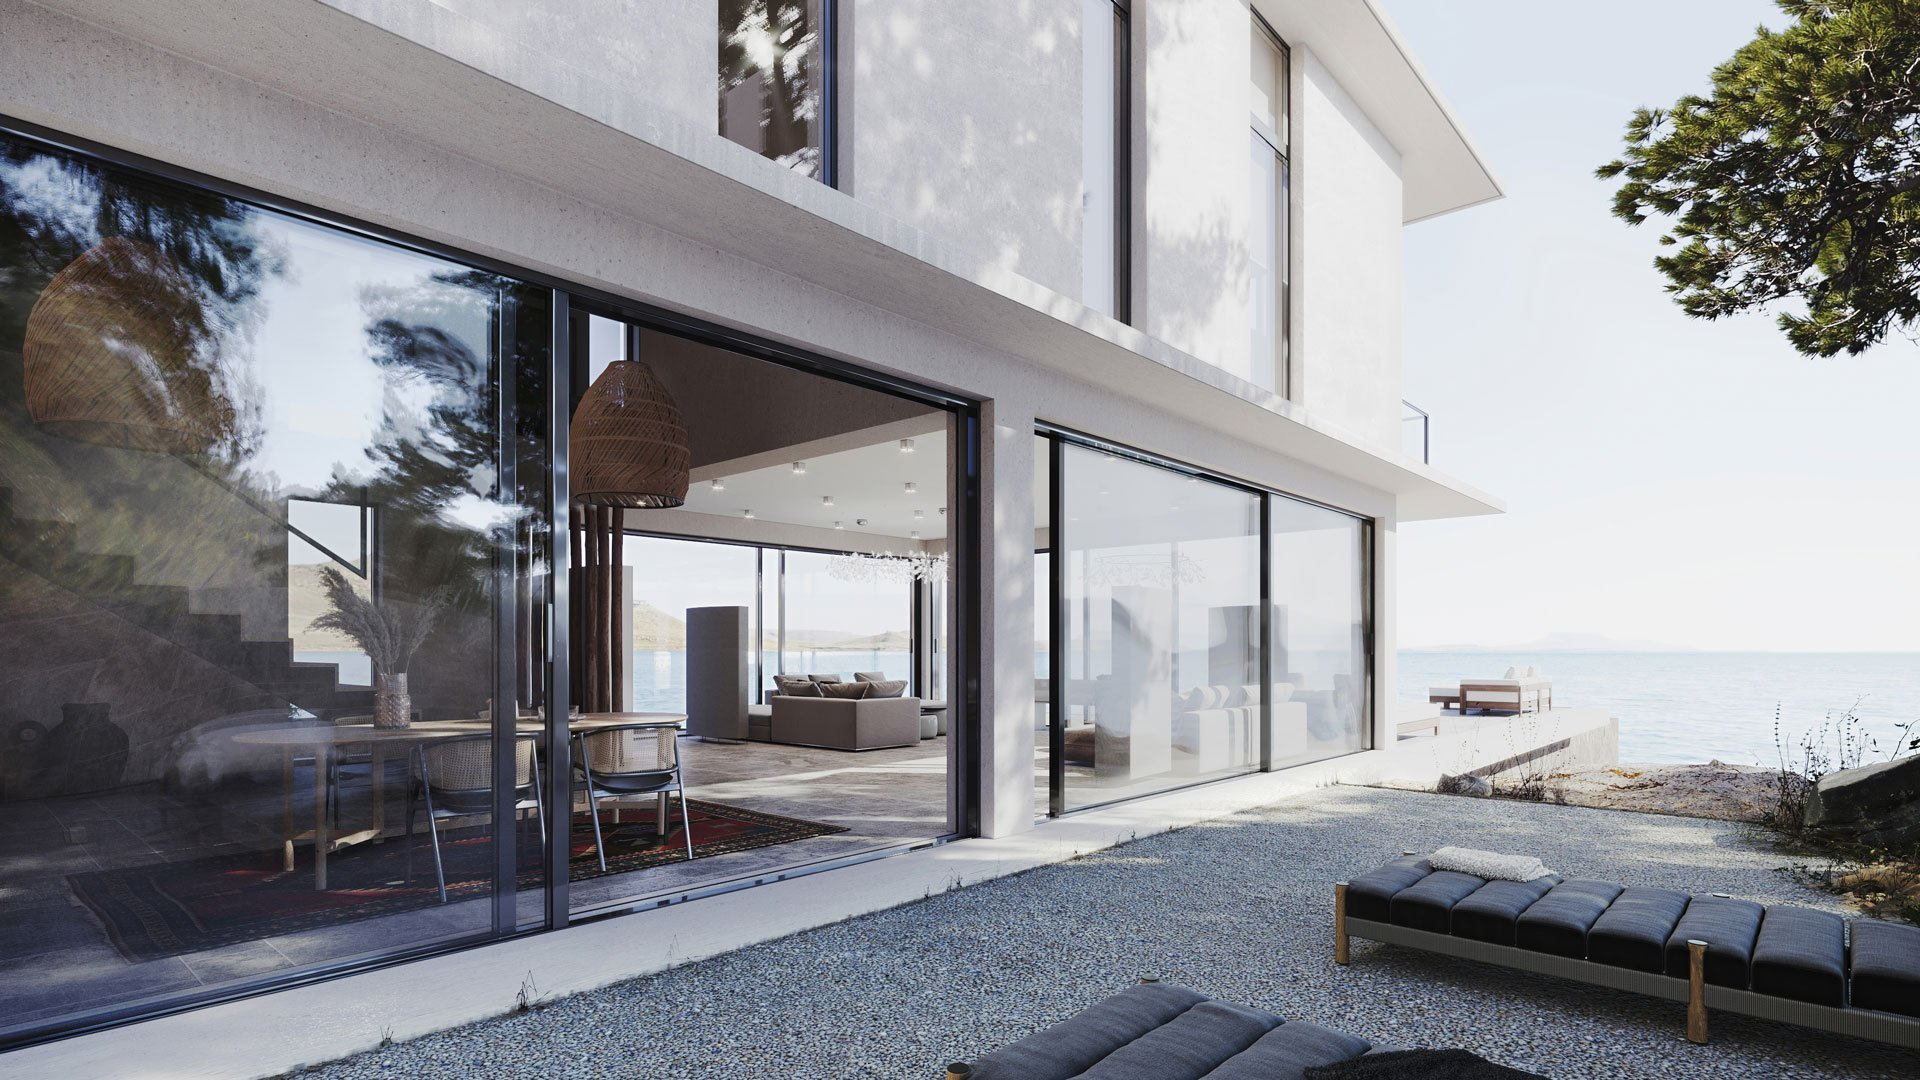 3D Rendering Showing a Cozy Home on the Coast